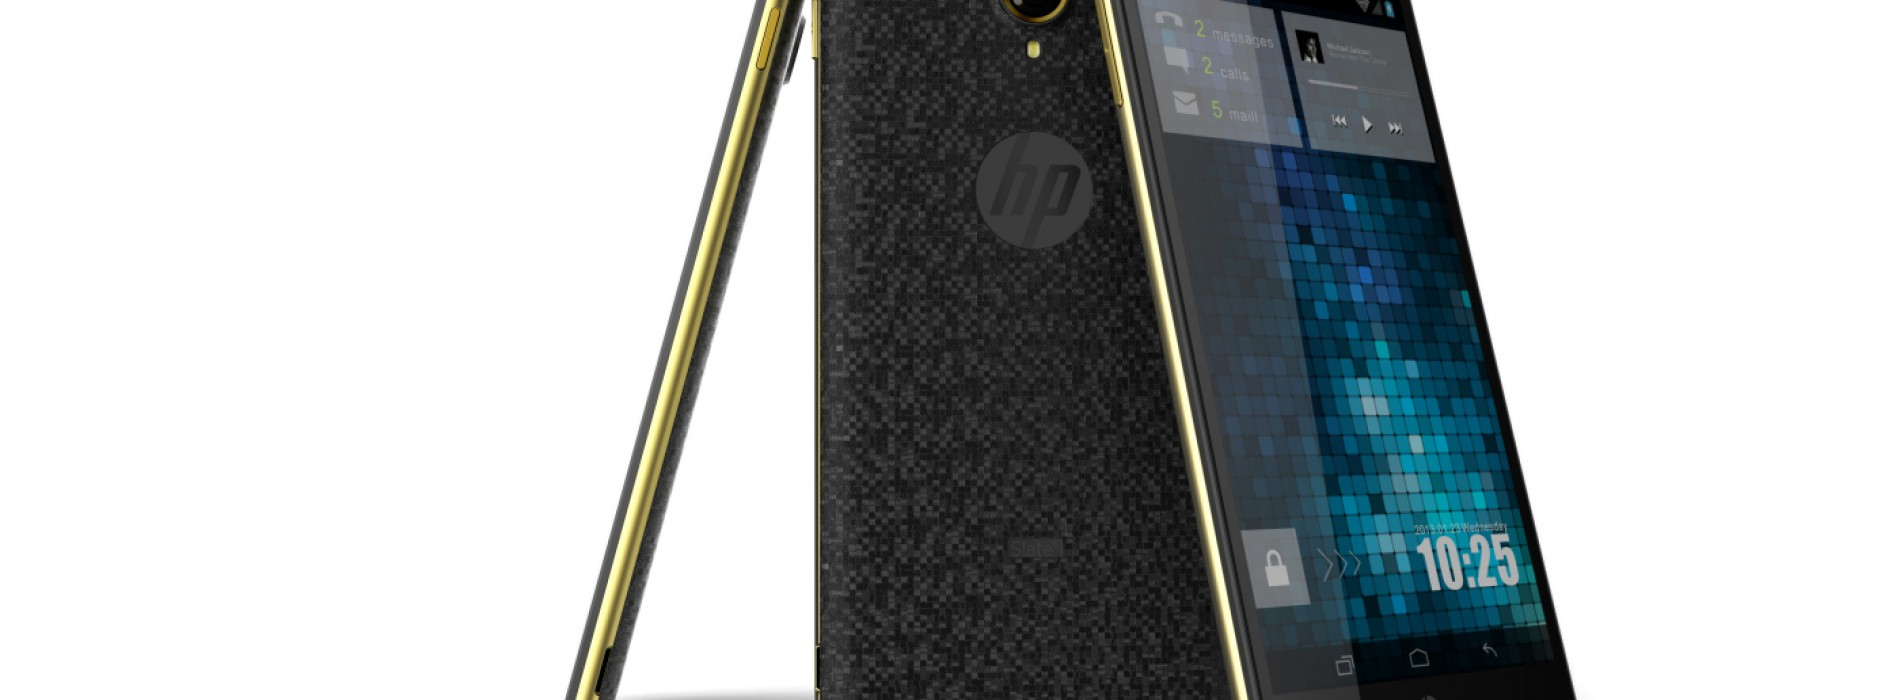 HP intros Slate 6, Slate 7 Voice Tablets for India